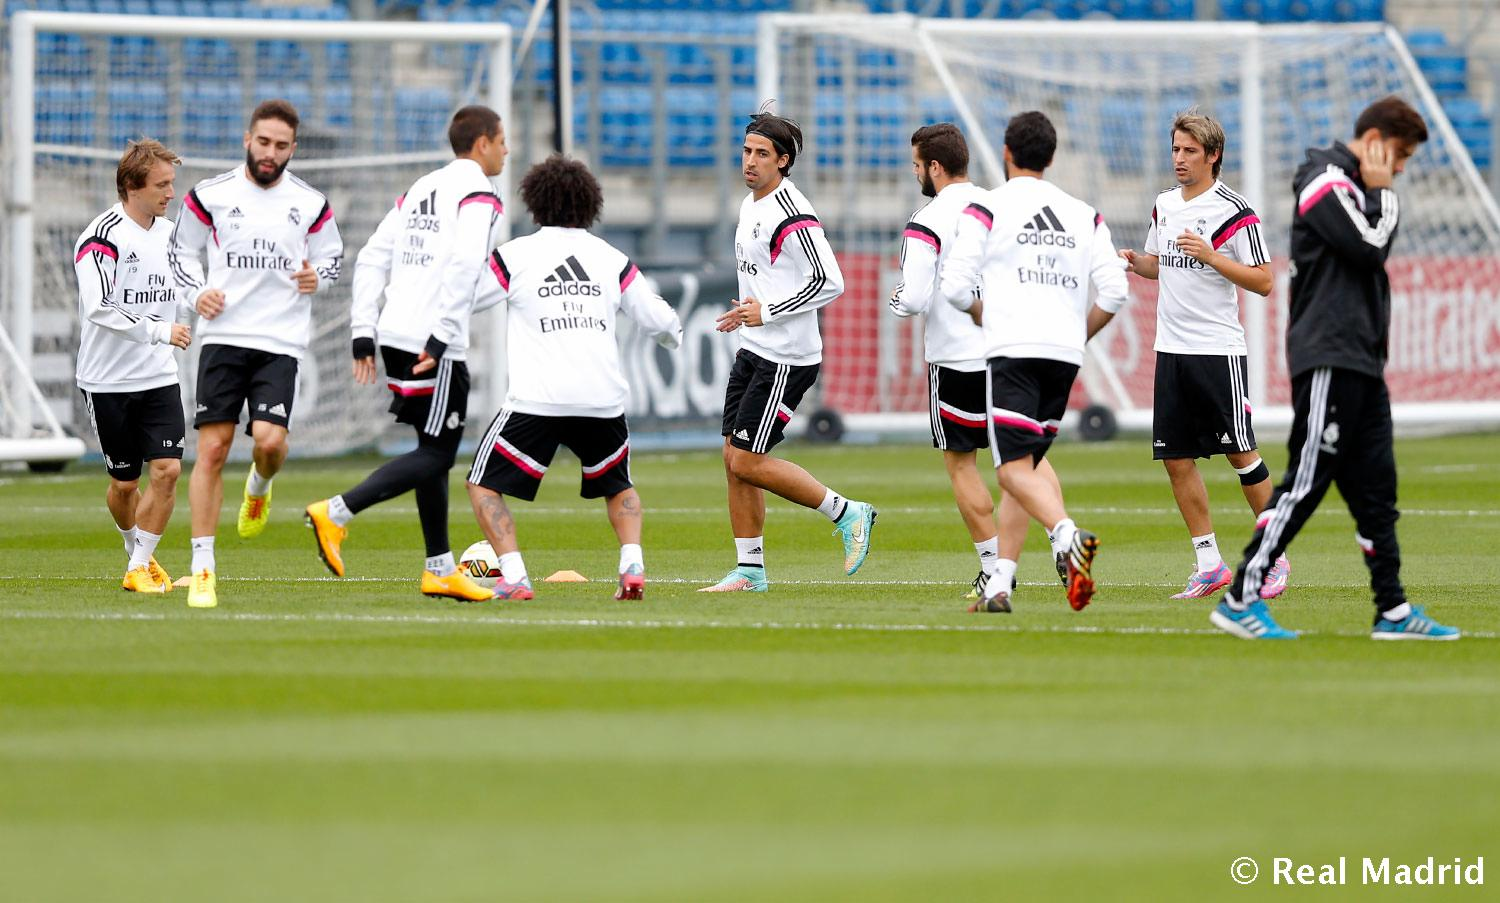 Real Madrid - Entrenamiento del Real Madrid - 15-10-2014